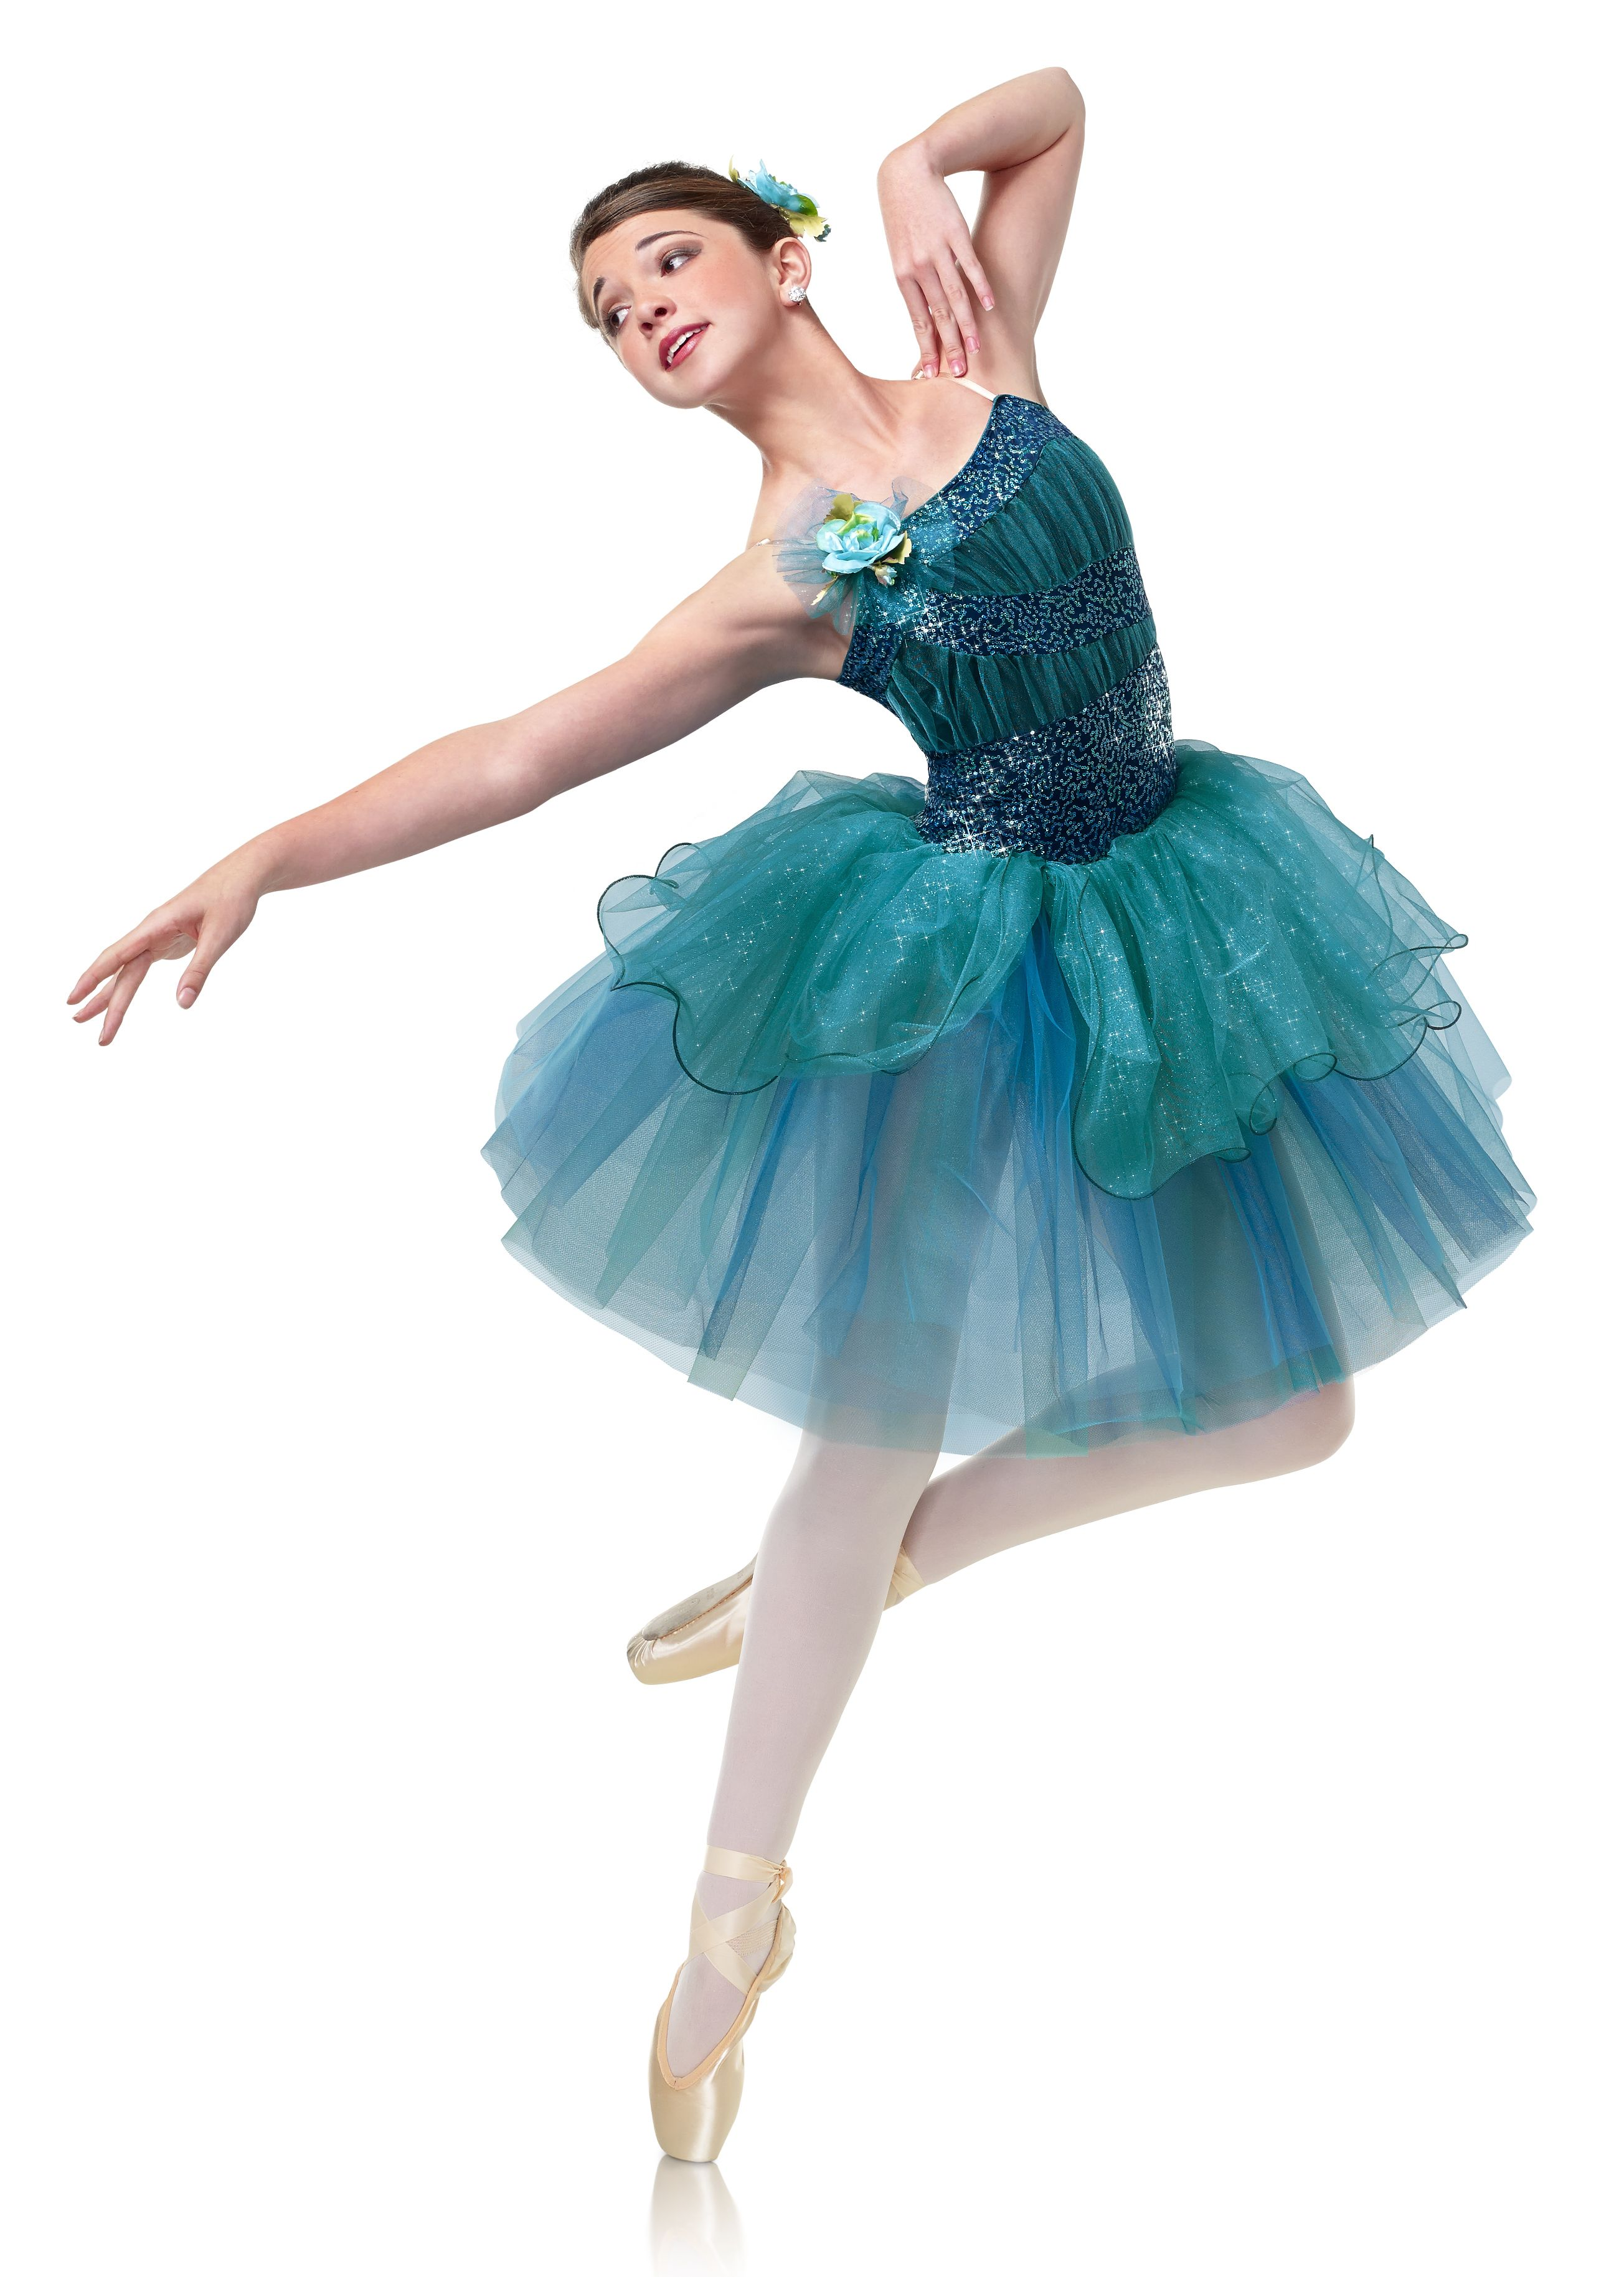 Romantic Tutus Like This One By Curtain Call With A Layered Skirt